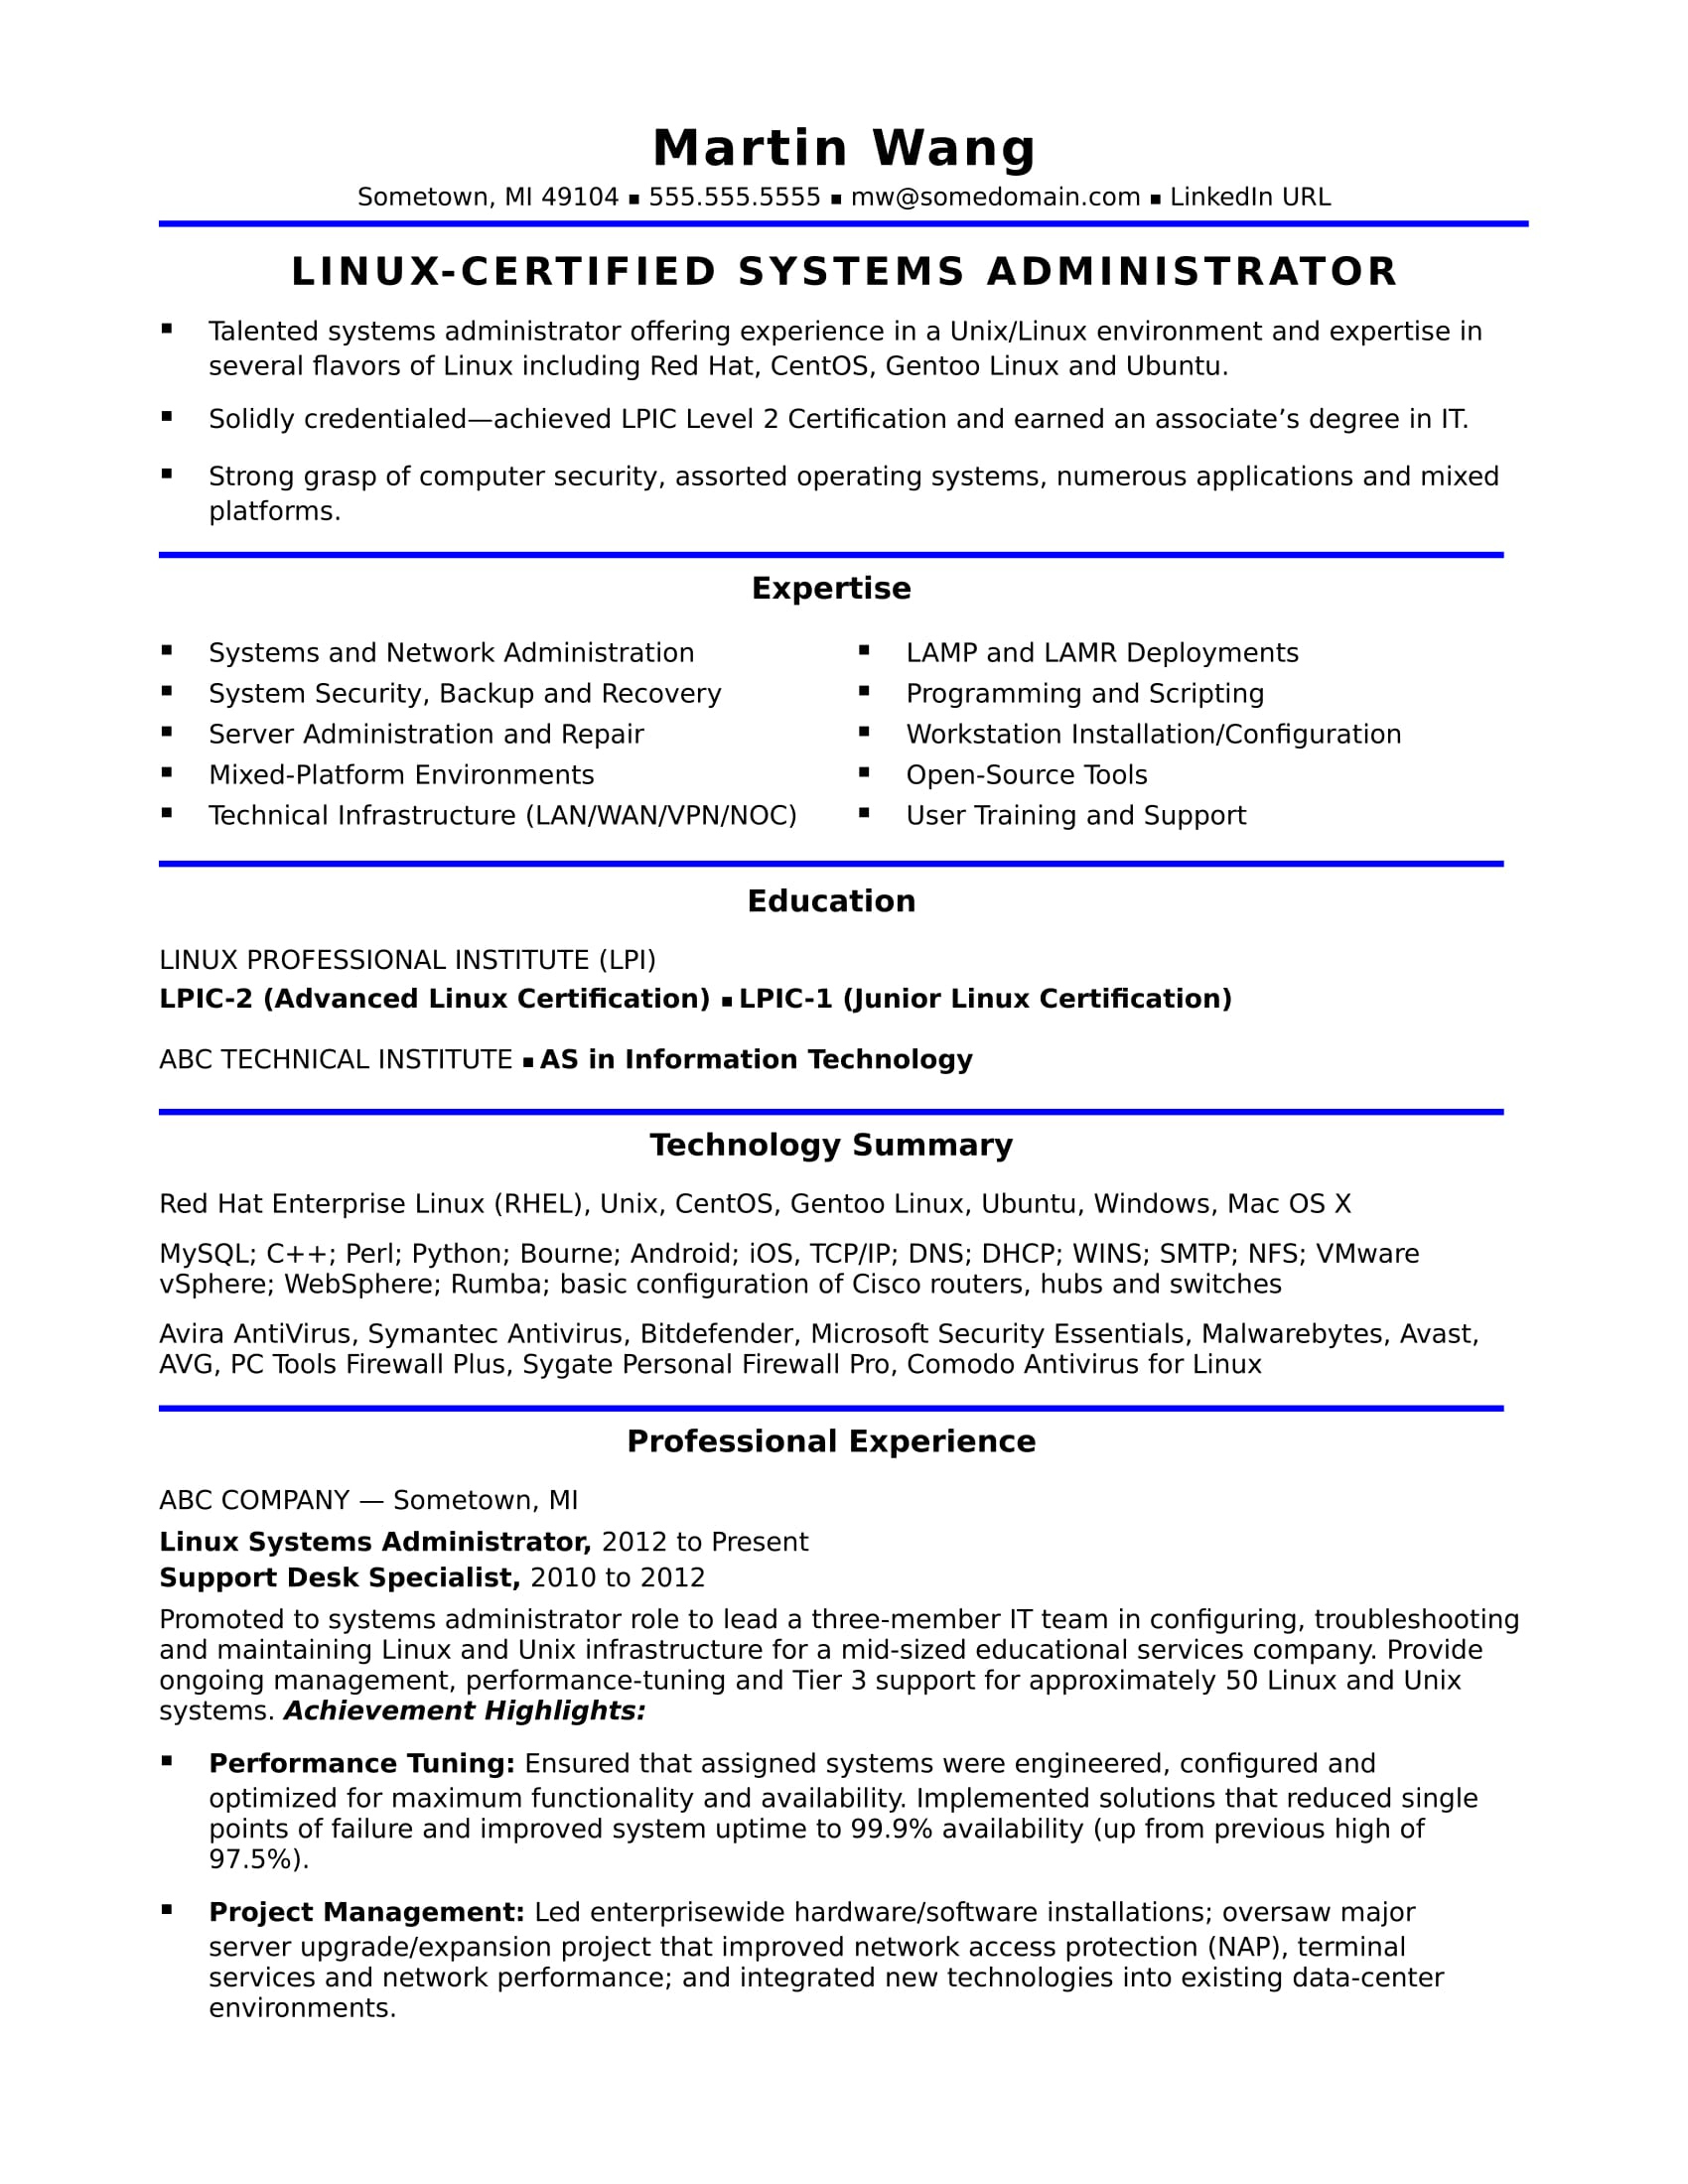 Delightful Sample Resume For A Midlevel Systems Administrator In Systems Administrator Resume